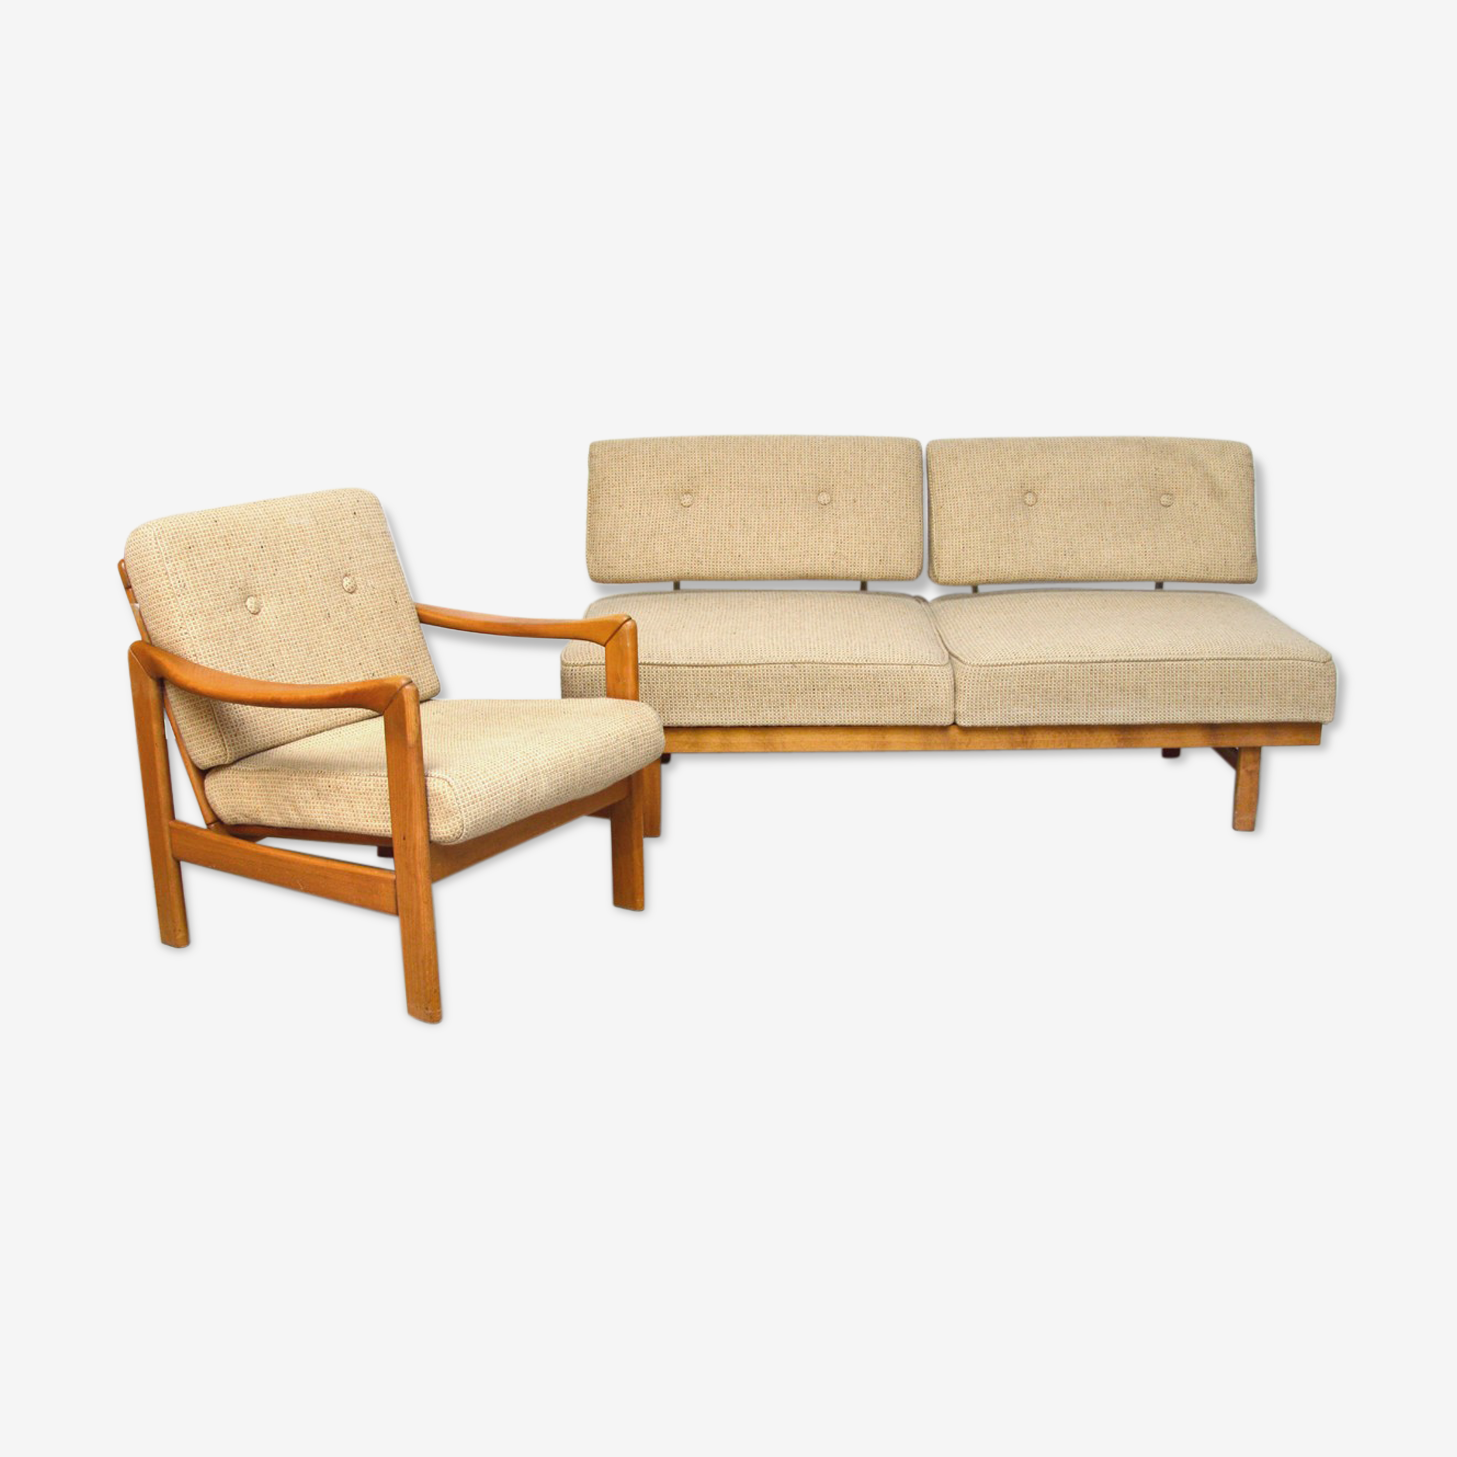 Ensemble daybed scandinave 1960